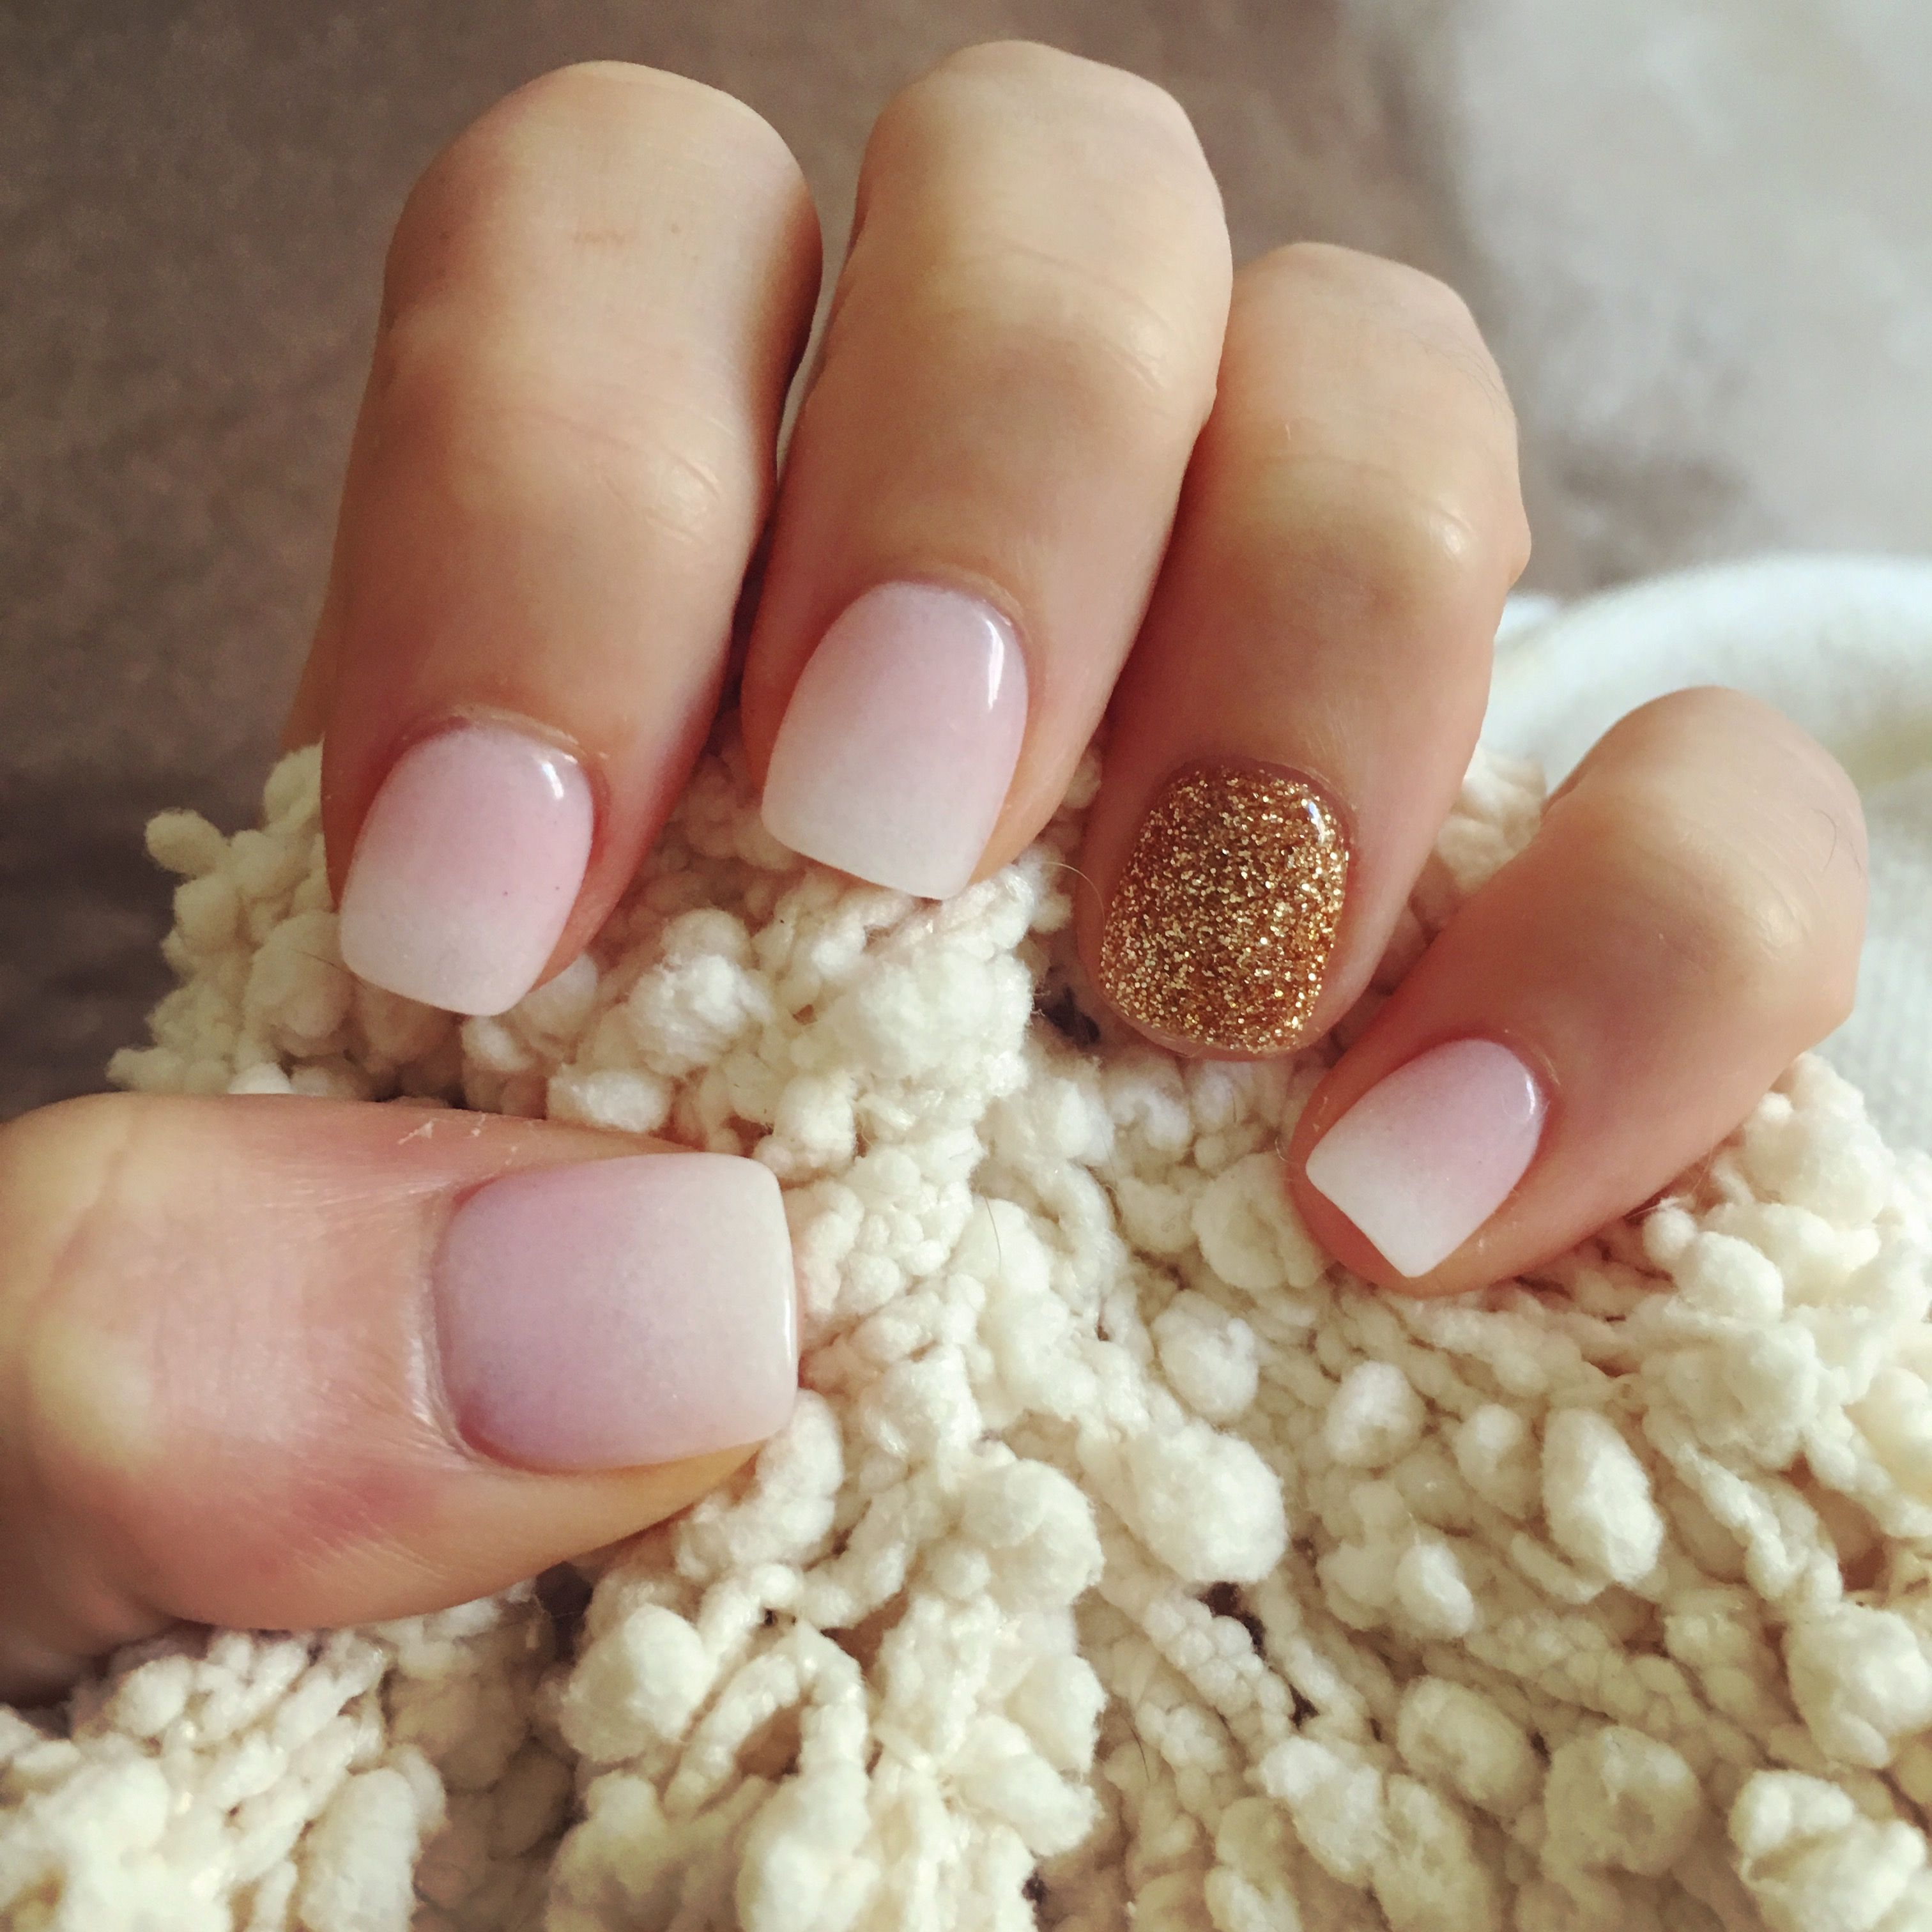 French Ombre Nexgen Nails Love Them So Much Nexgen Ombrenails Ombre Naildipping Nails Nexgennails Nexgen Nails Short Acrylic Nails Dipped Nails